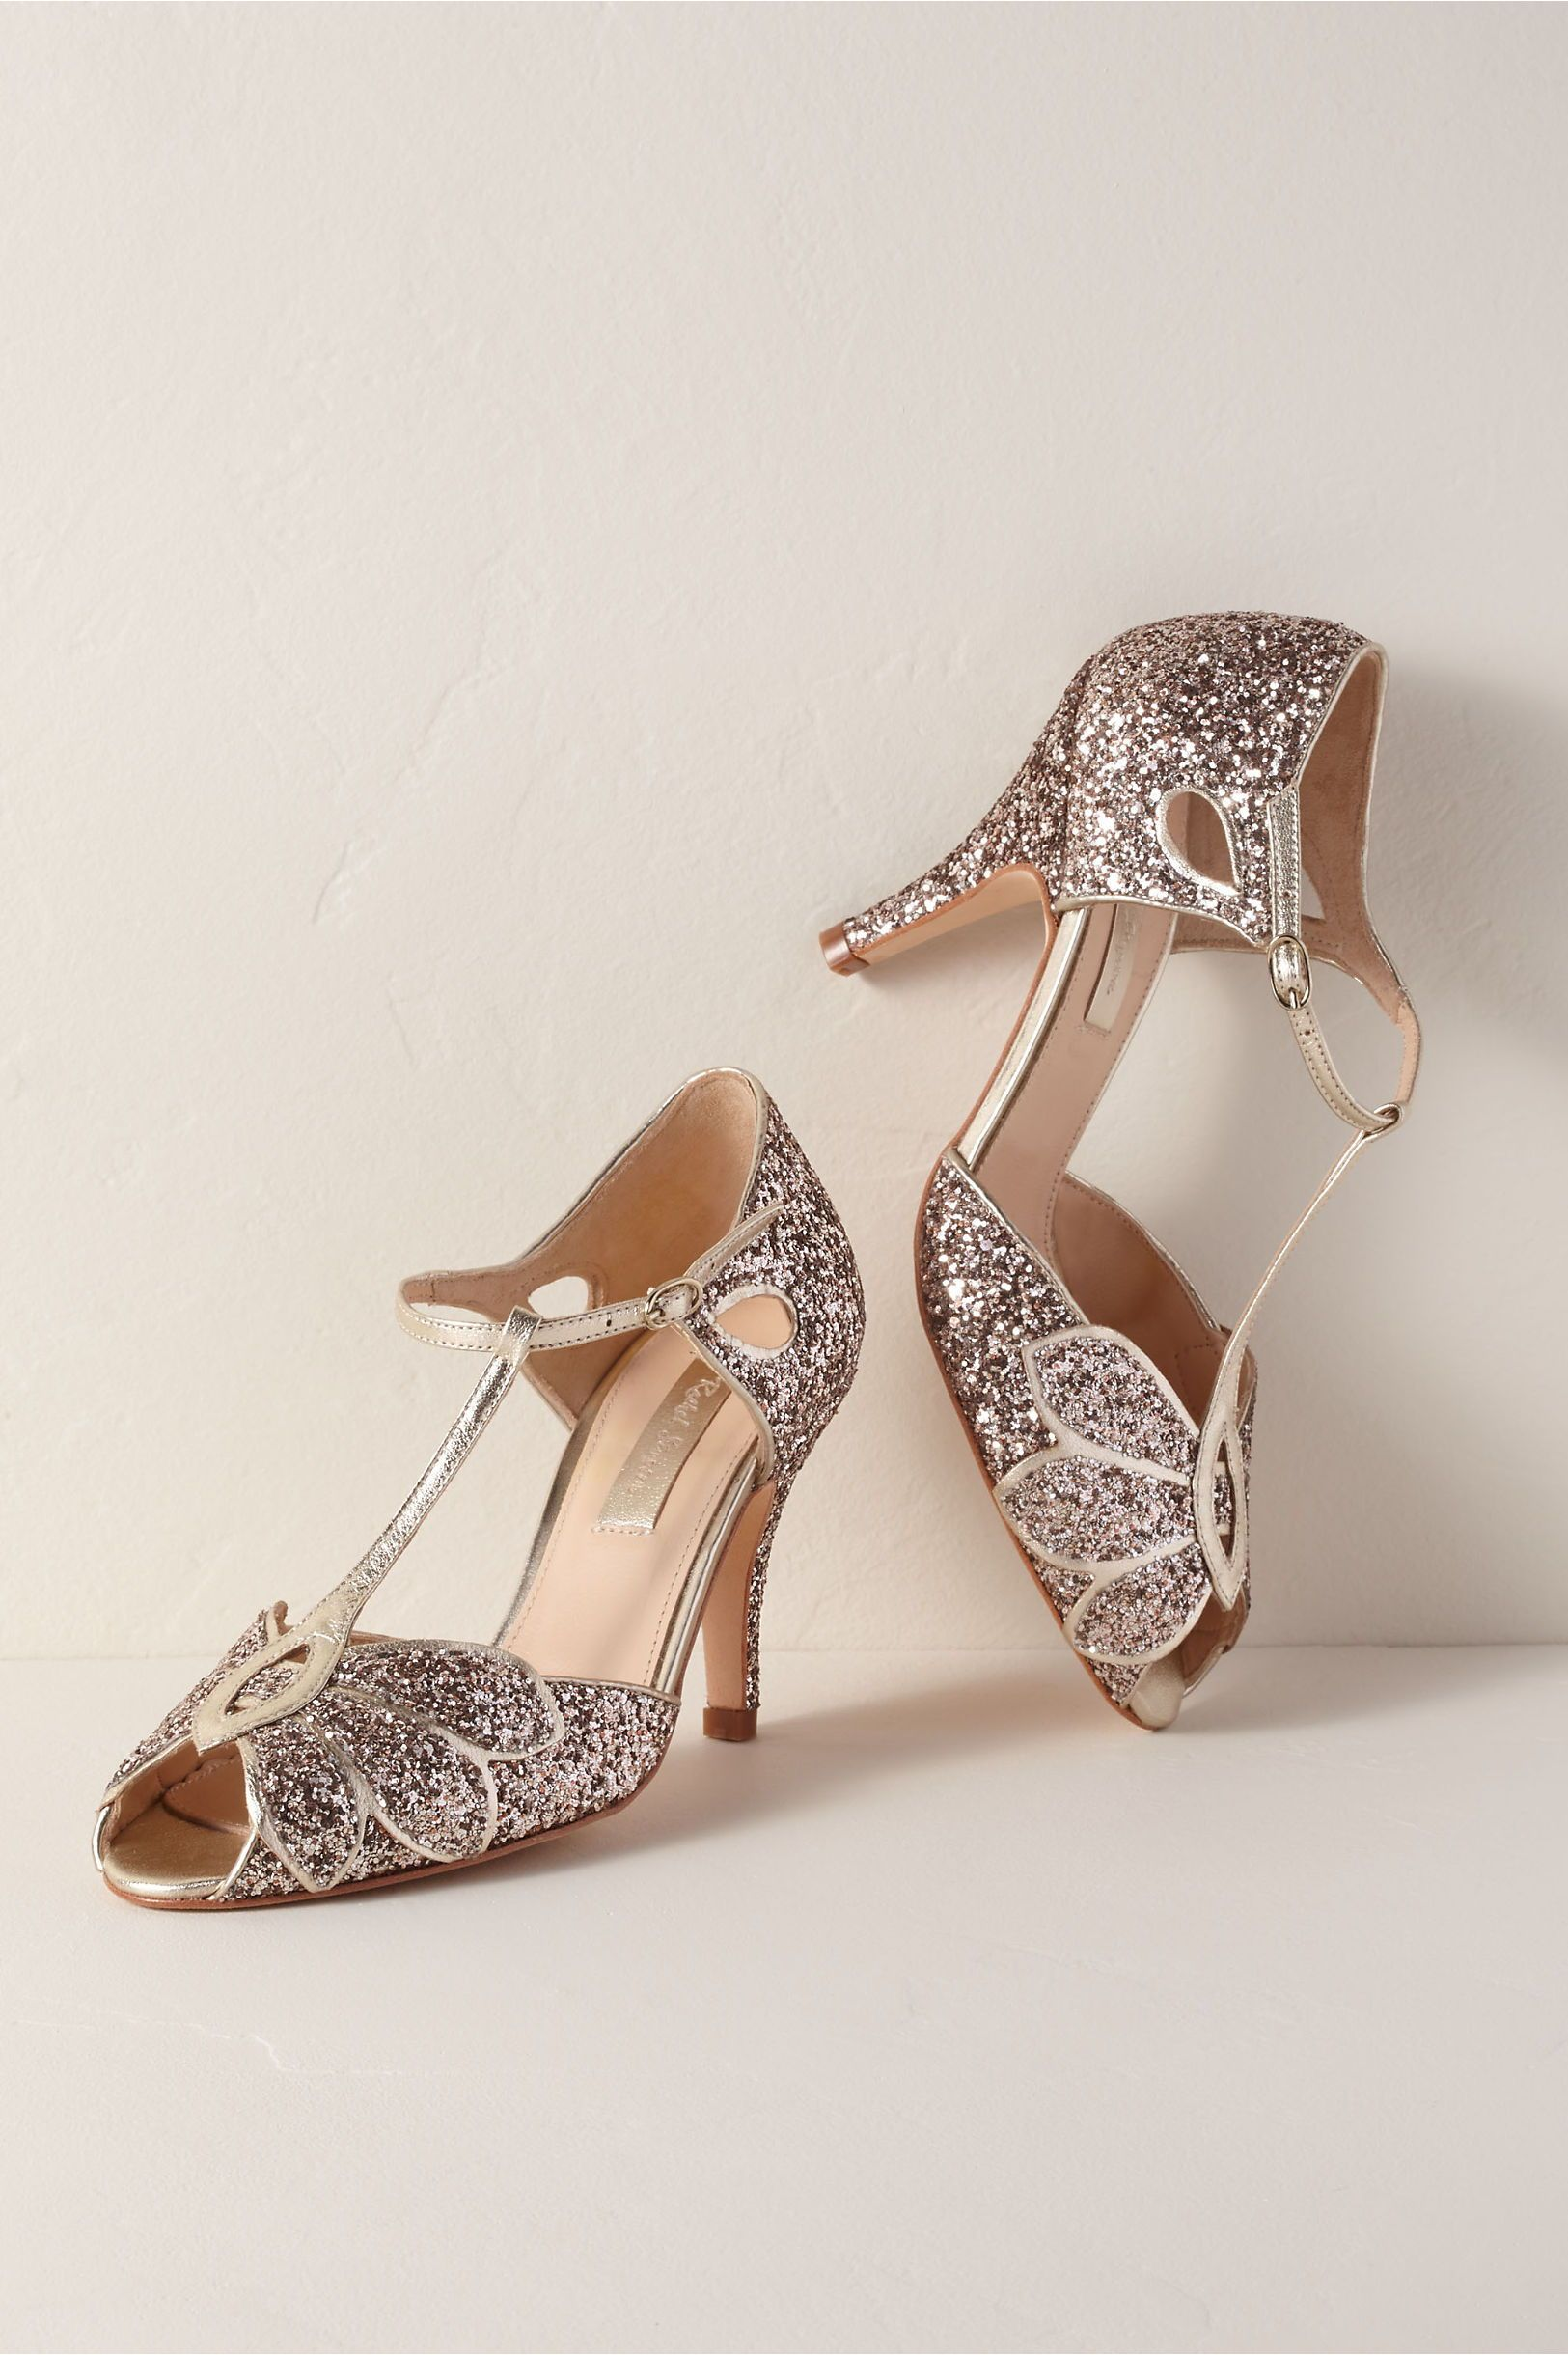 Glitter Gatsby Shoes Vintage 1920s Inspired Flapper Heels Bridal Shoes Low Heel Wedding Shoes Heels Wedding Shoes Low Heel